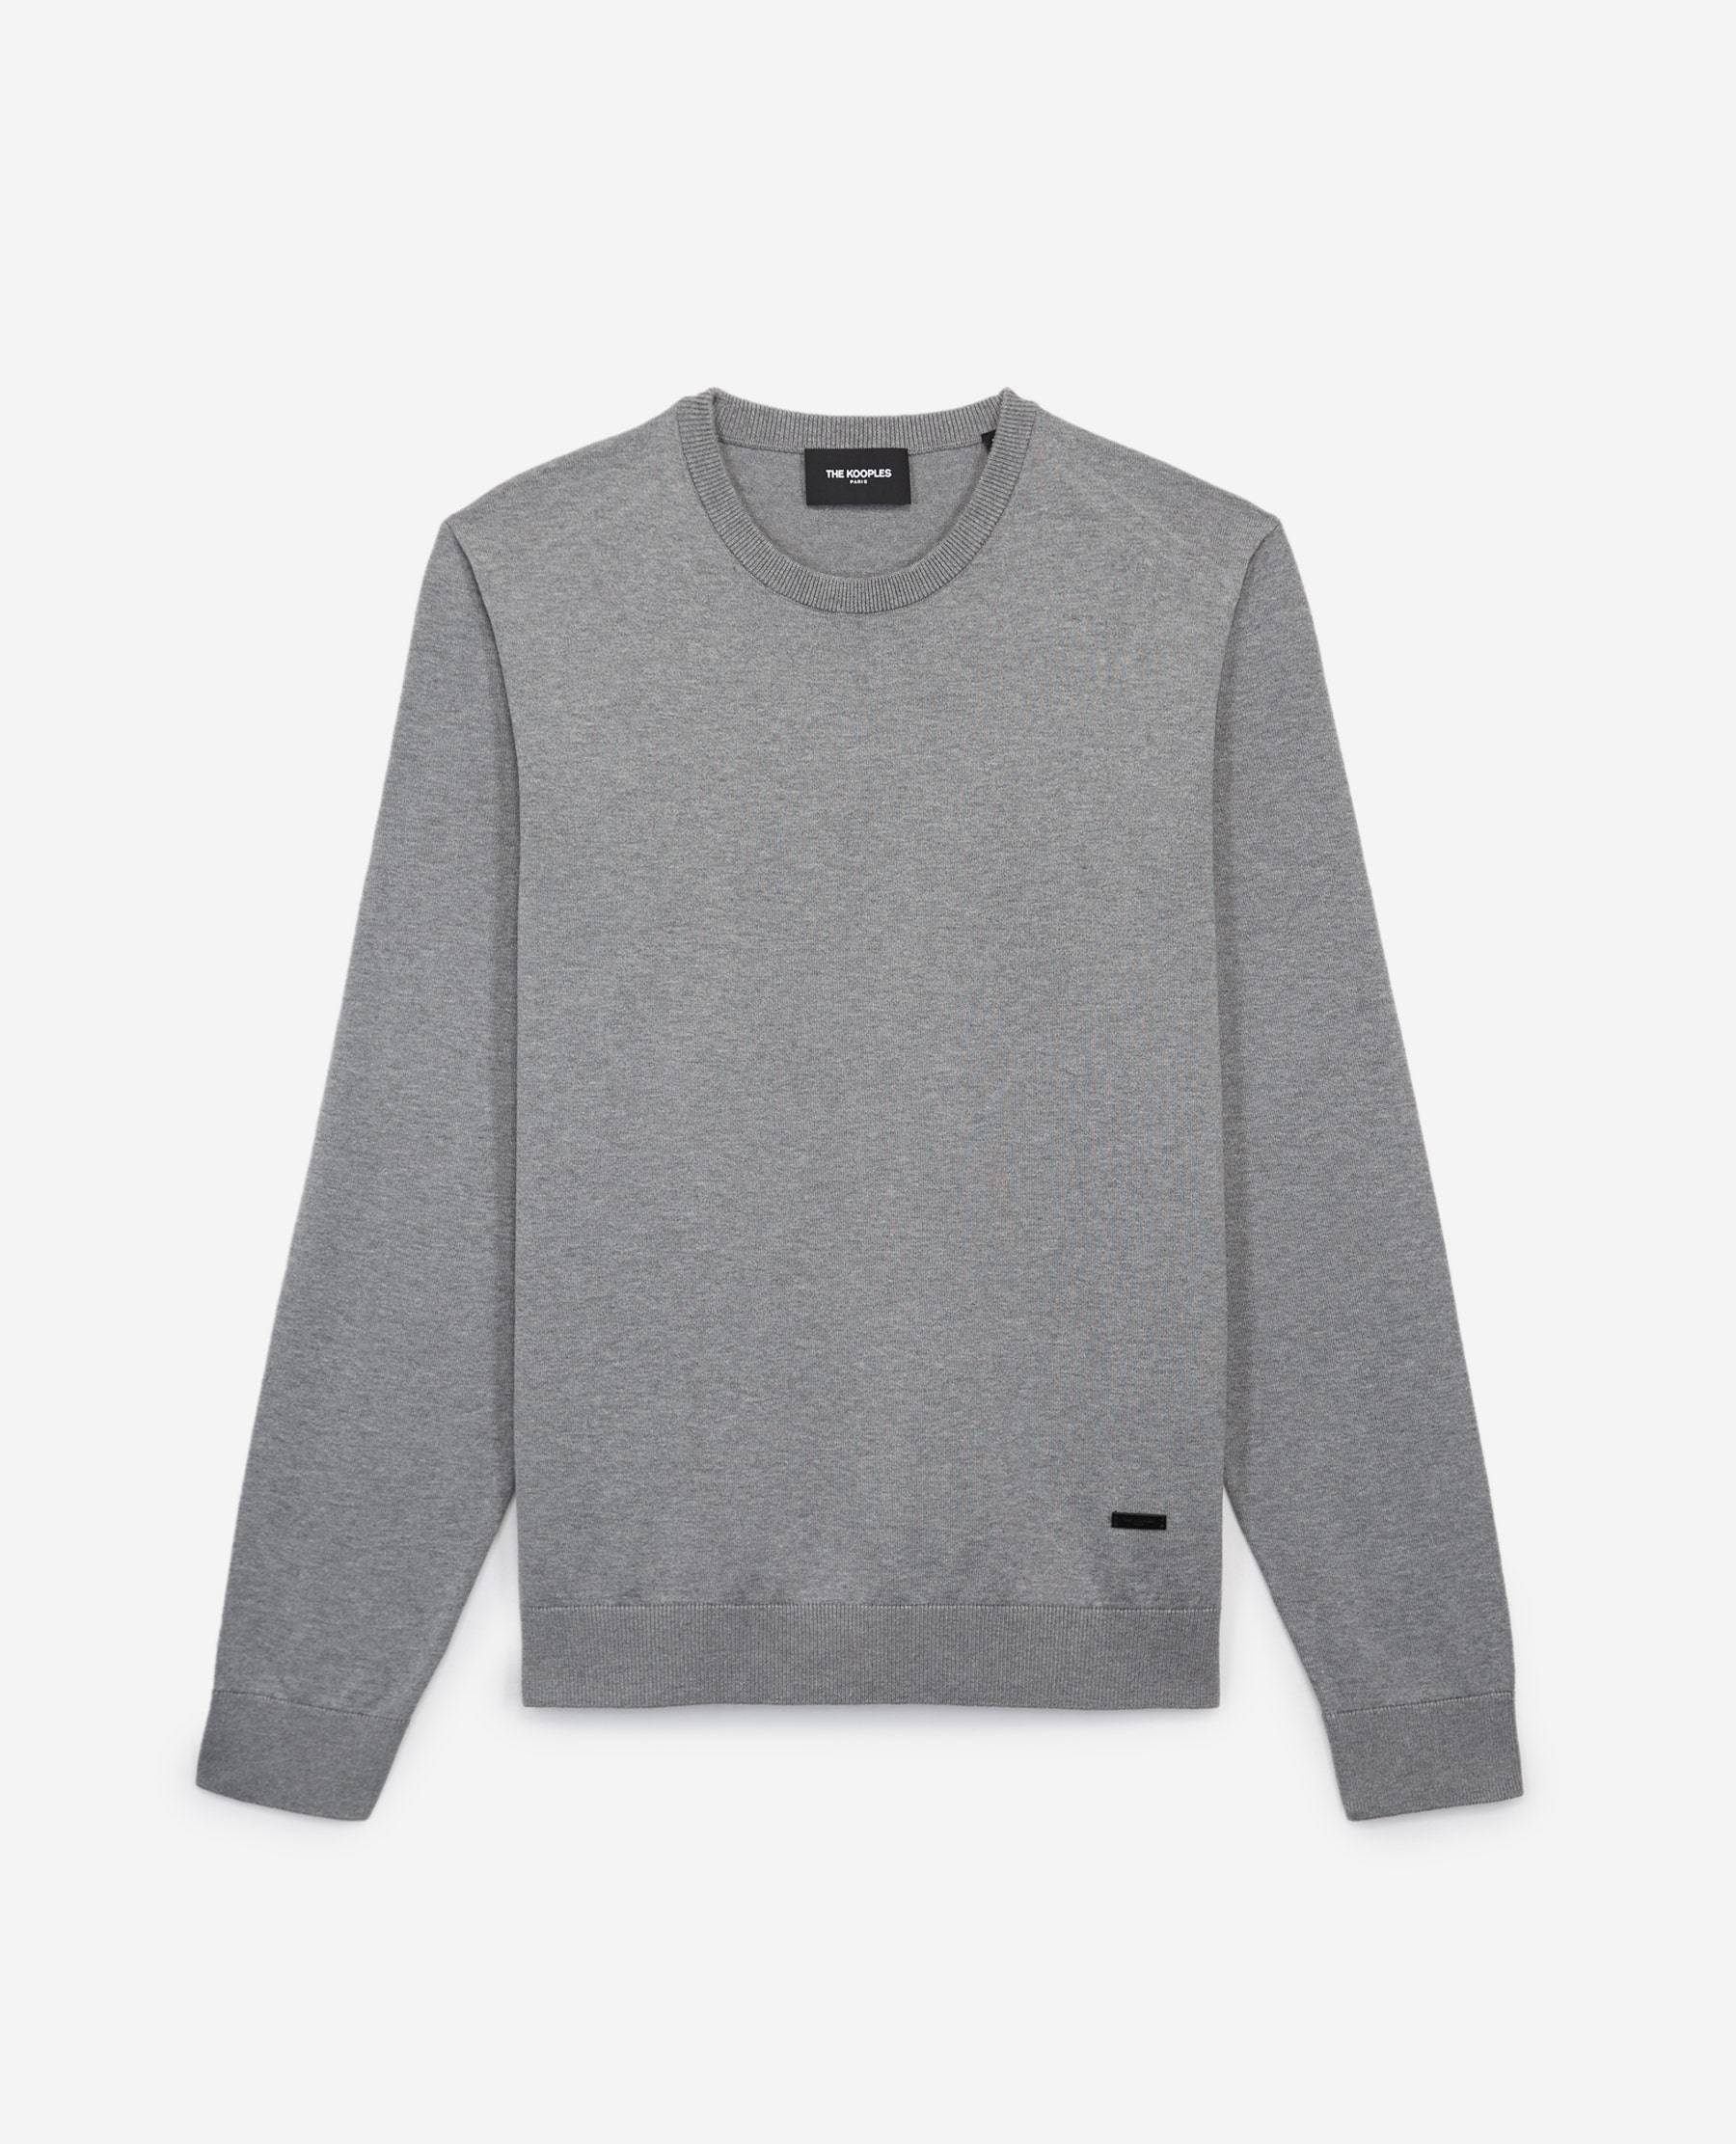 The Kooples - Pull coton gris clair col rond - HOMME XL